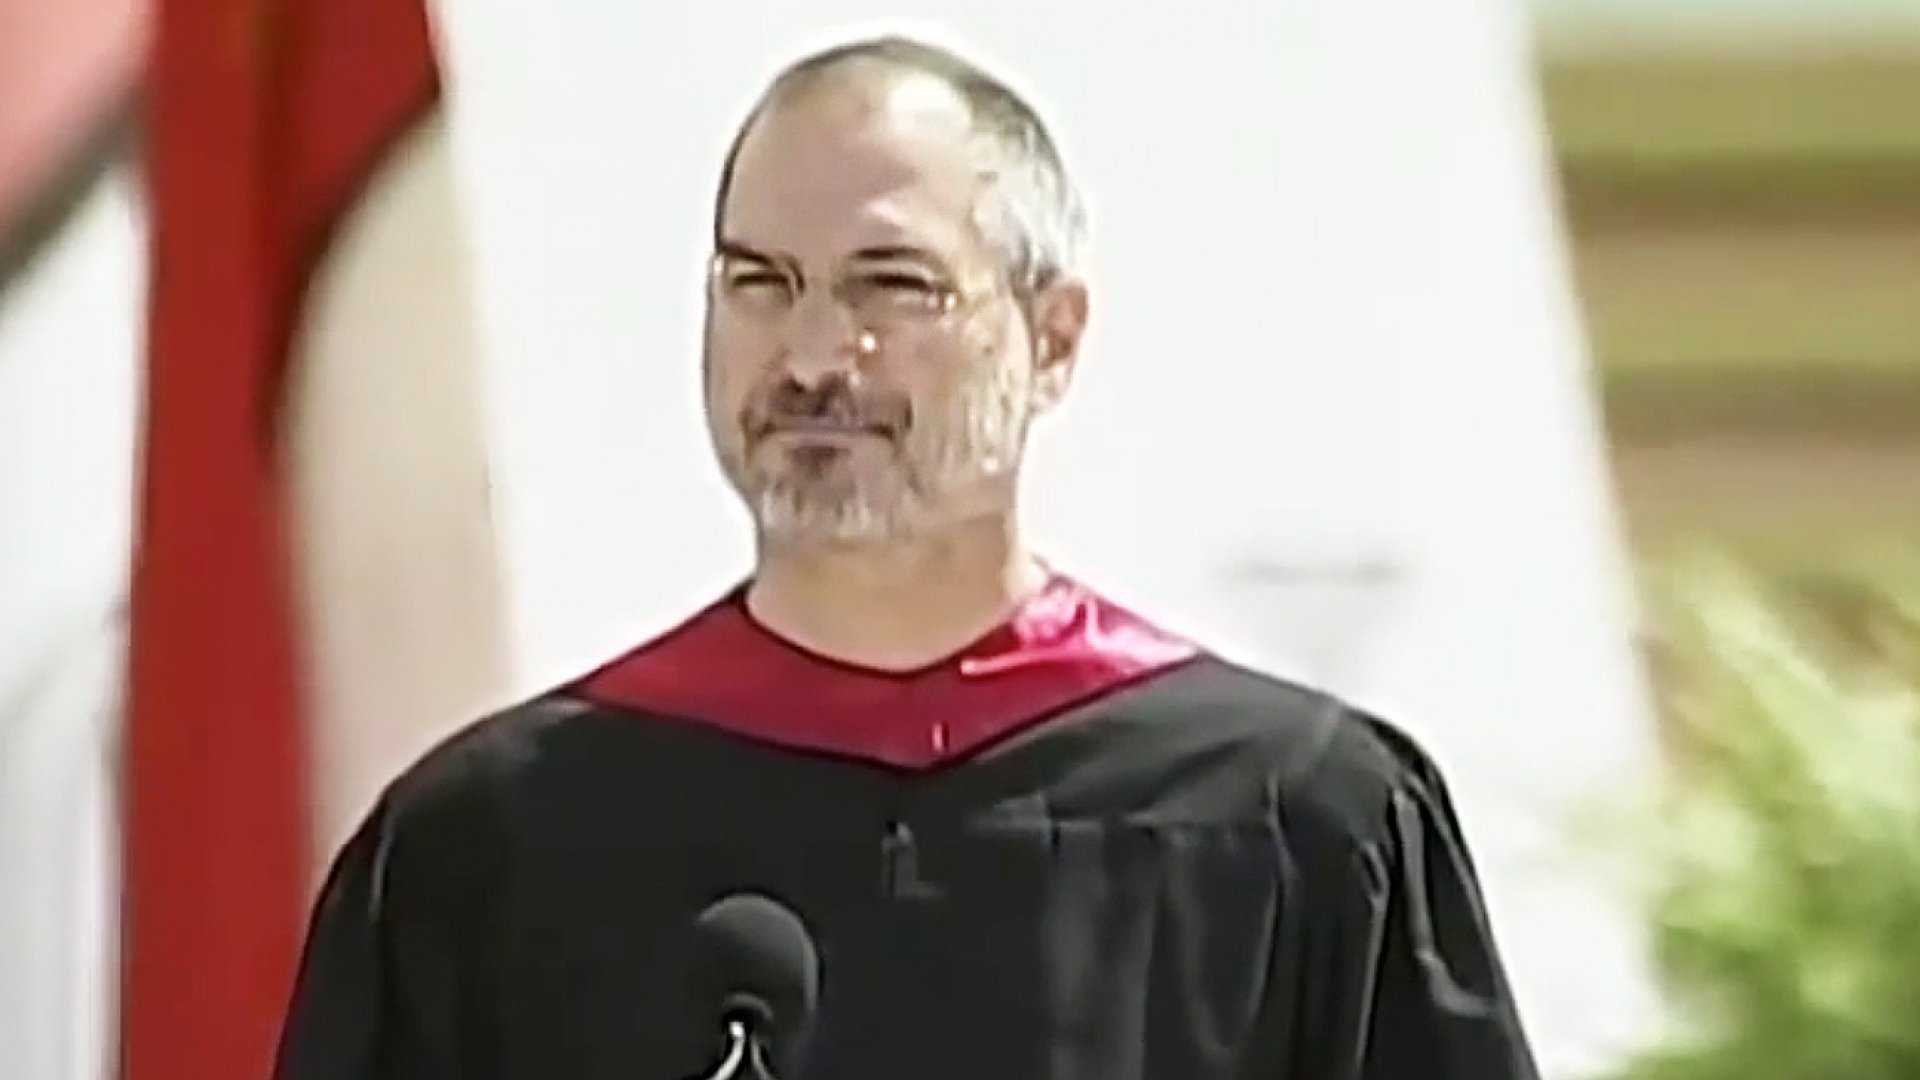 Need Some Inspiration? Watch These Commencement Speeches From Steve Jobs, Oprah Winfrey, and Others